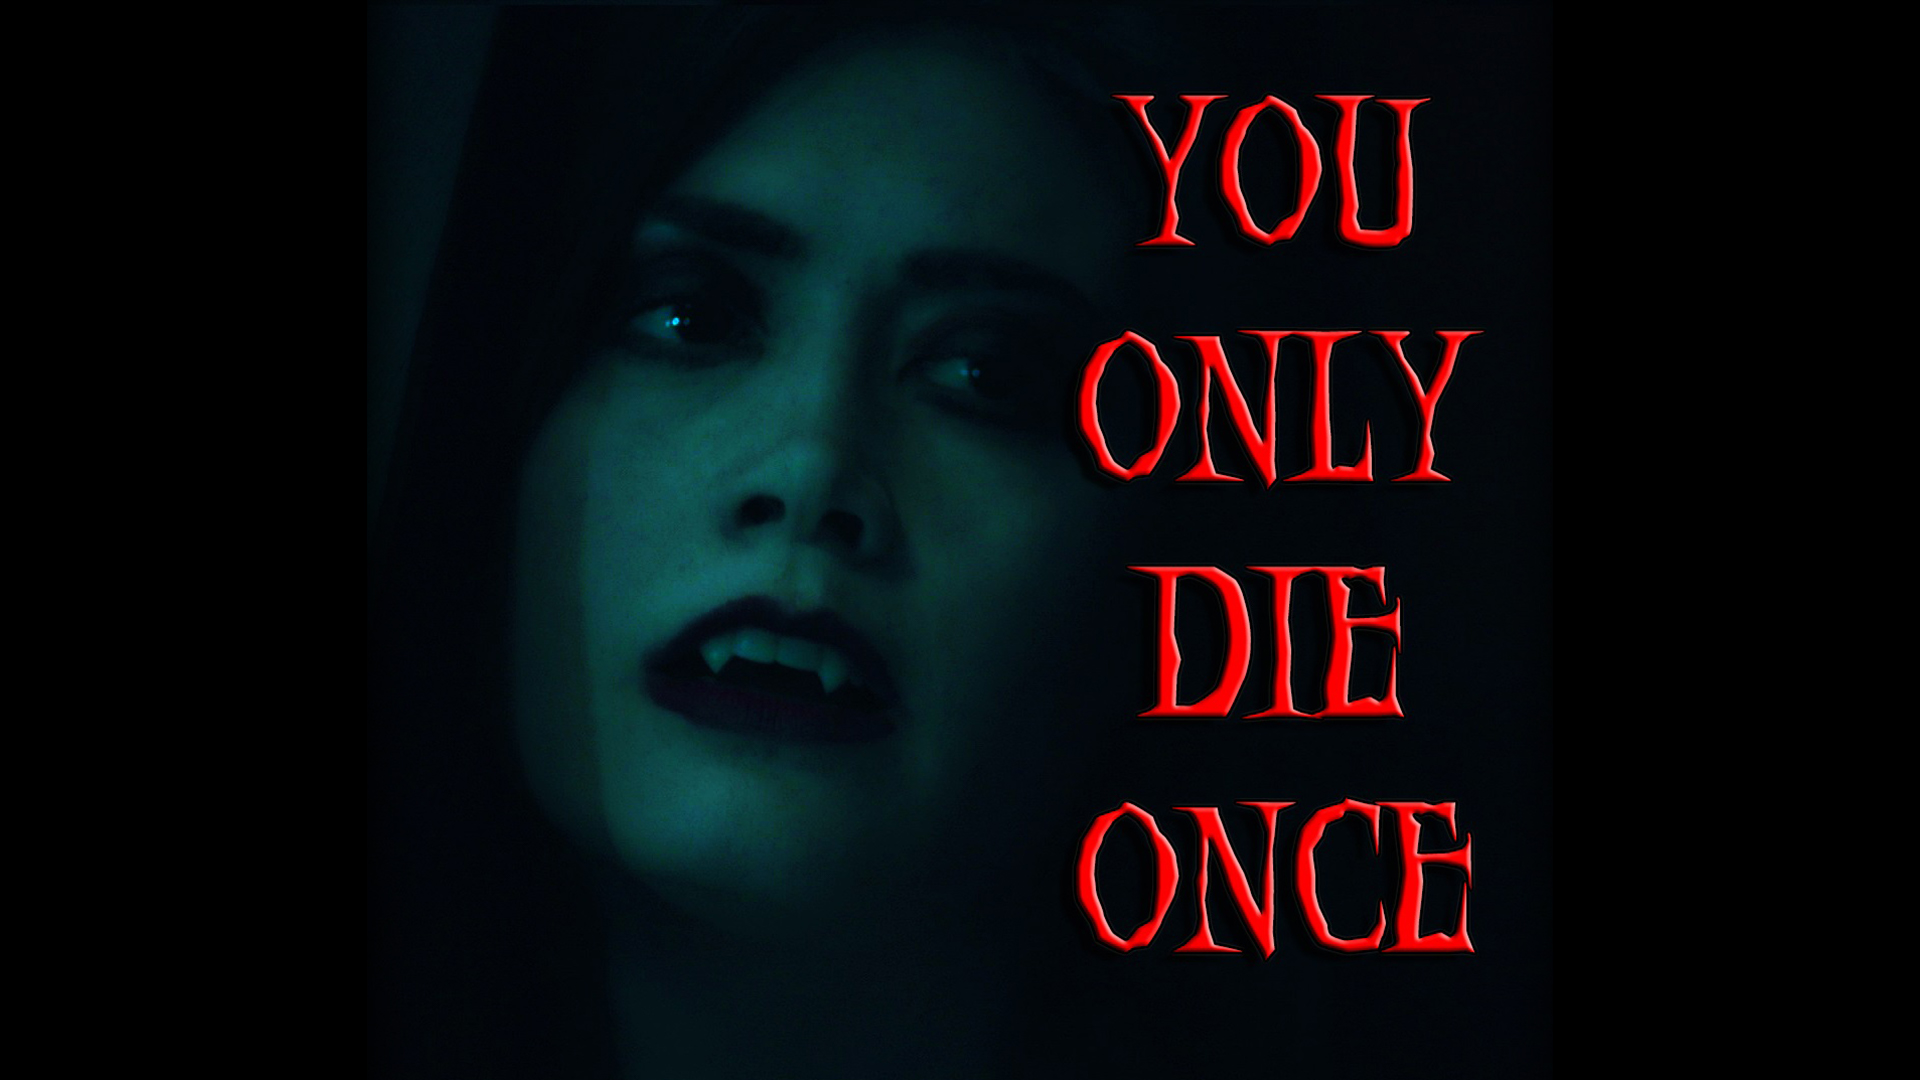 You Only Die Once